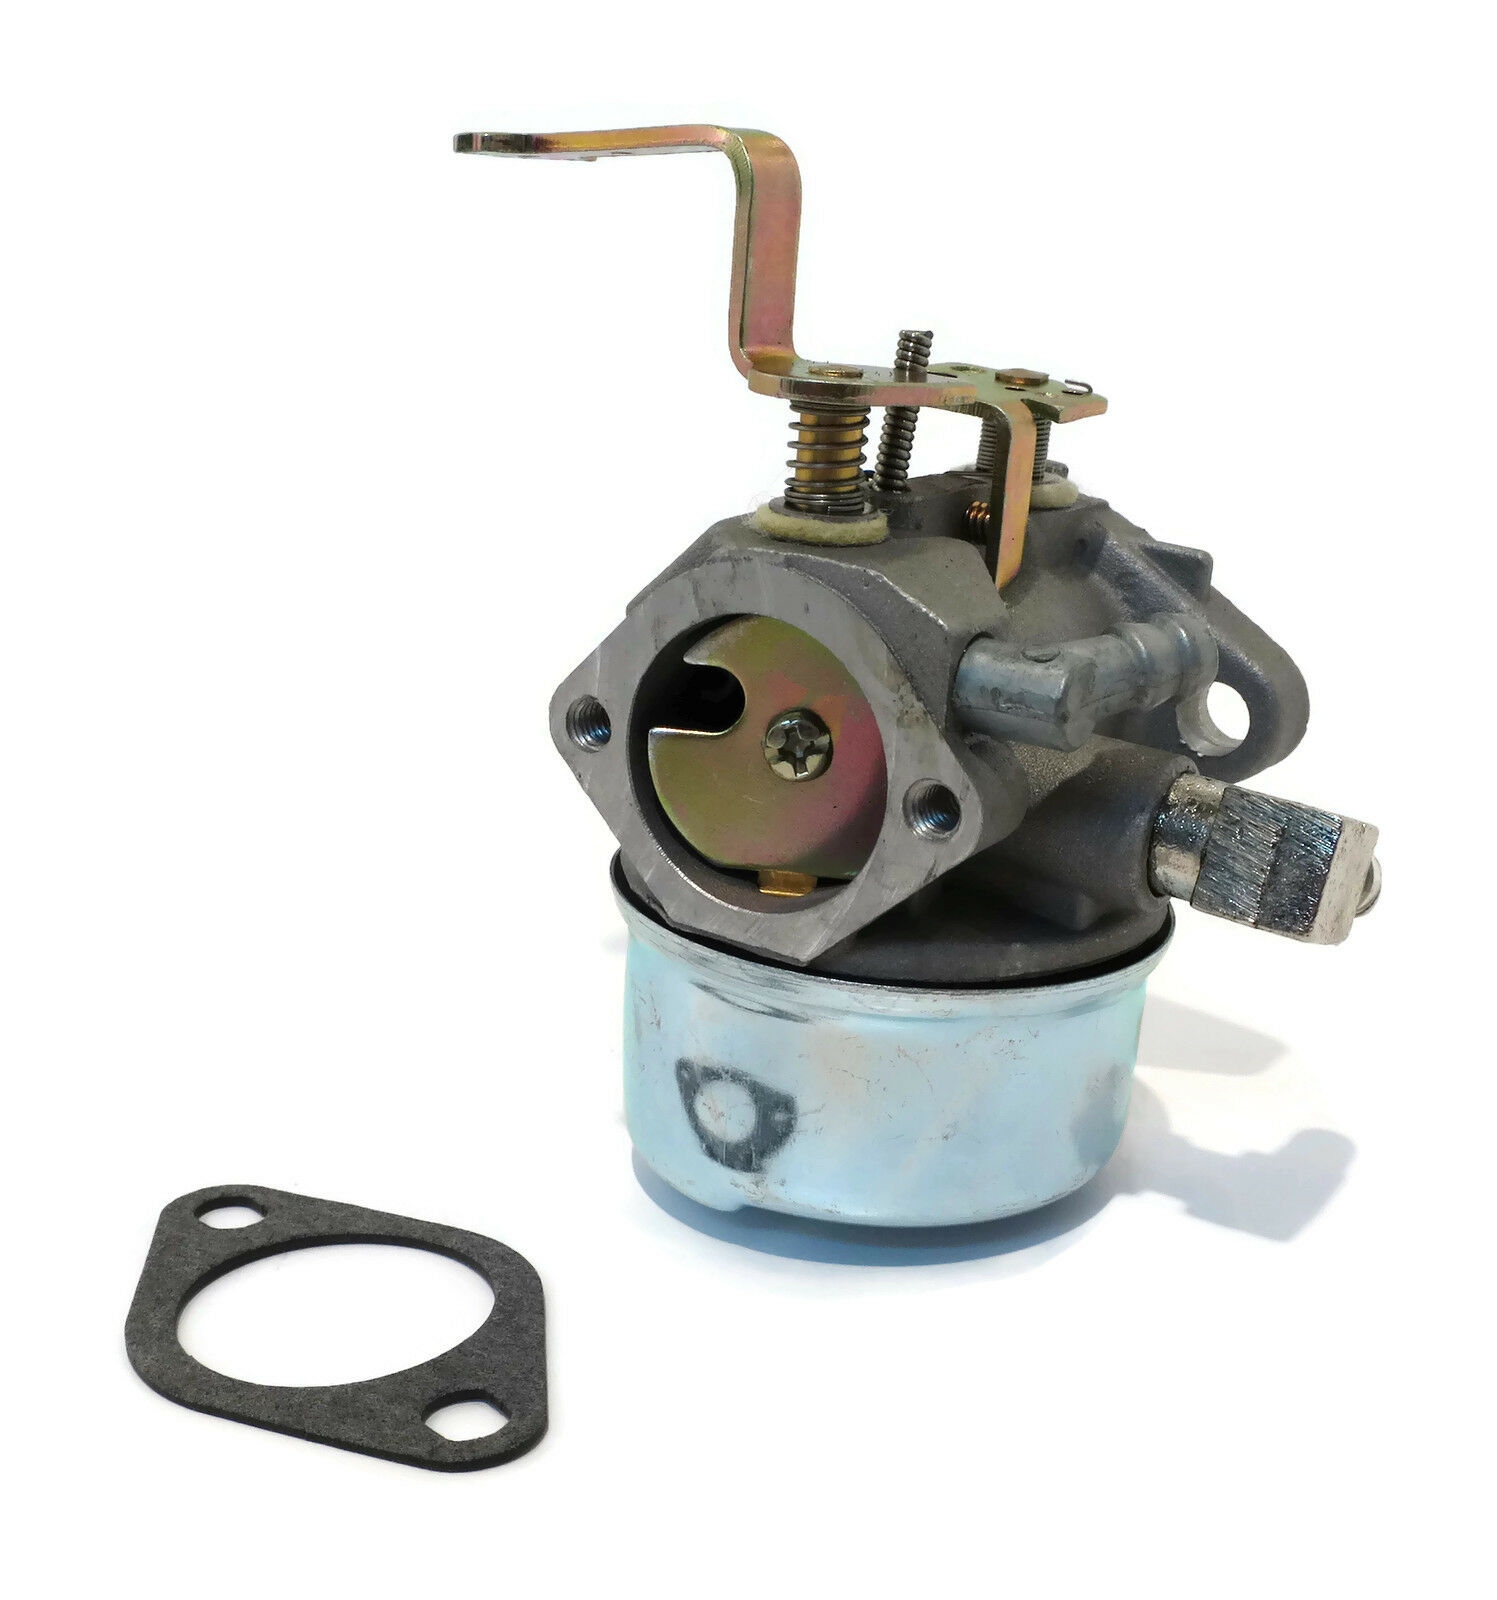 New Carburetor Carb Hm80 Hm100 For Tecumseh 640152a 640023 640051 Diagram Parts List Model H6075506n Tecumsehparts All 640140 640152